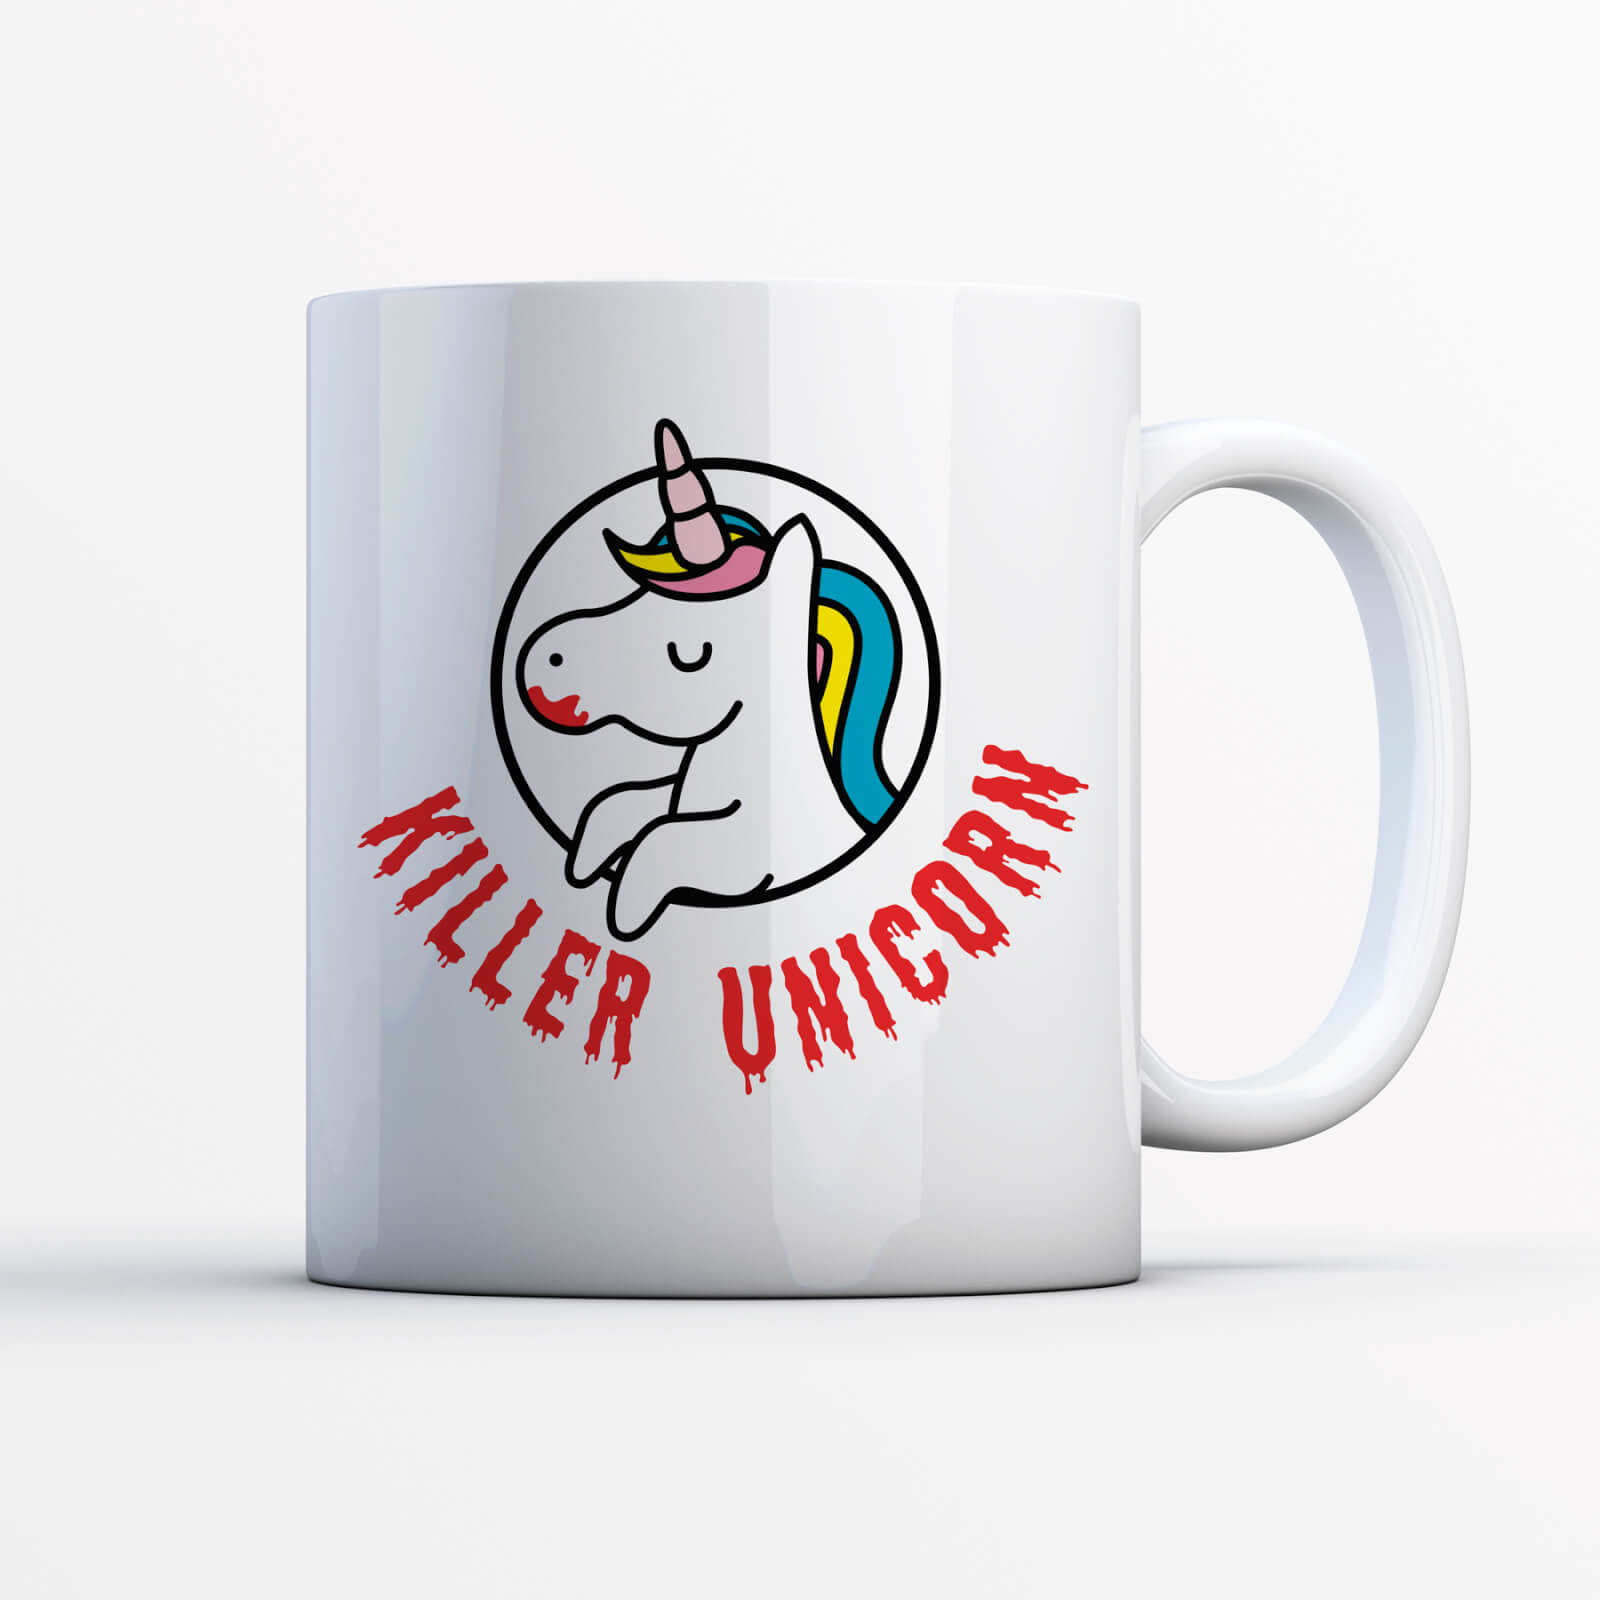 Killer Unicorn Mug